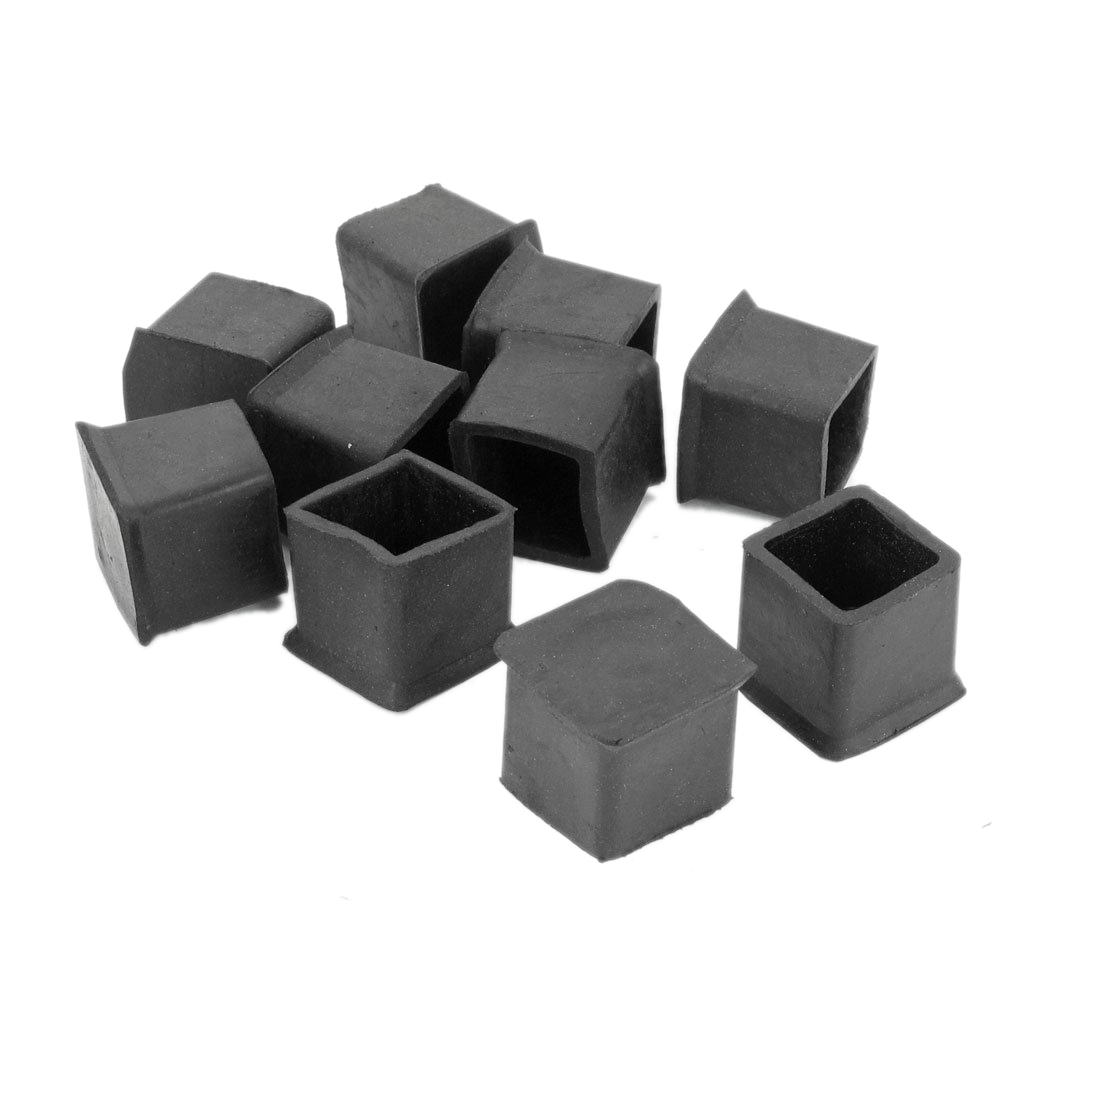 10 pcs rubber 25mm x 25mm furniture chair legs covers for Furniture guard